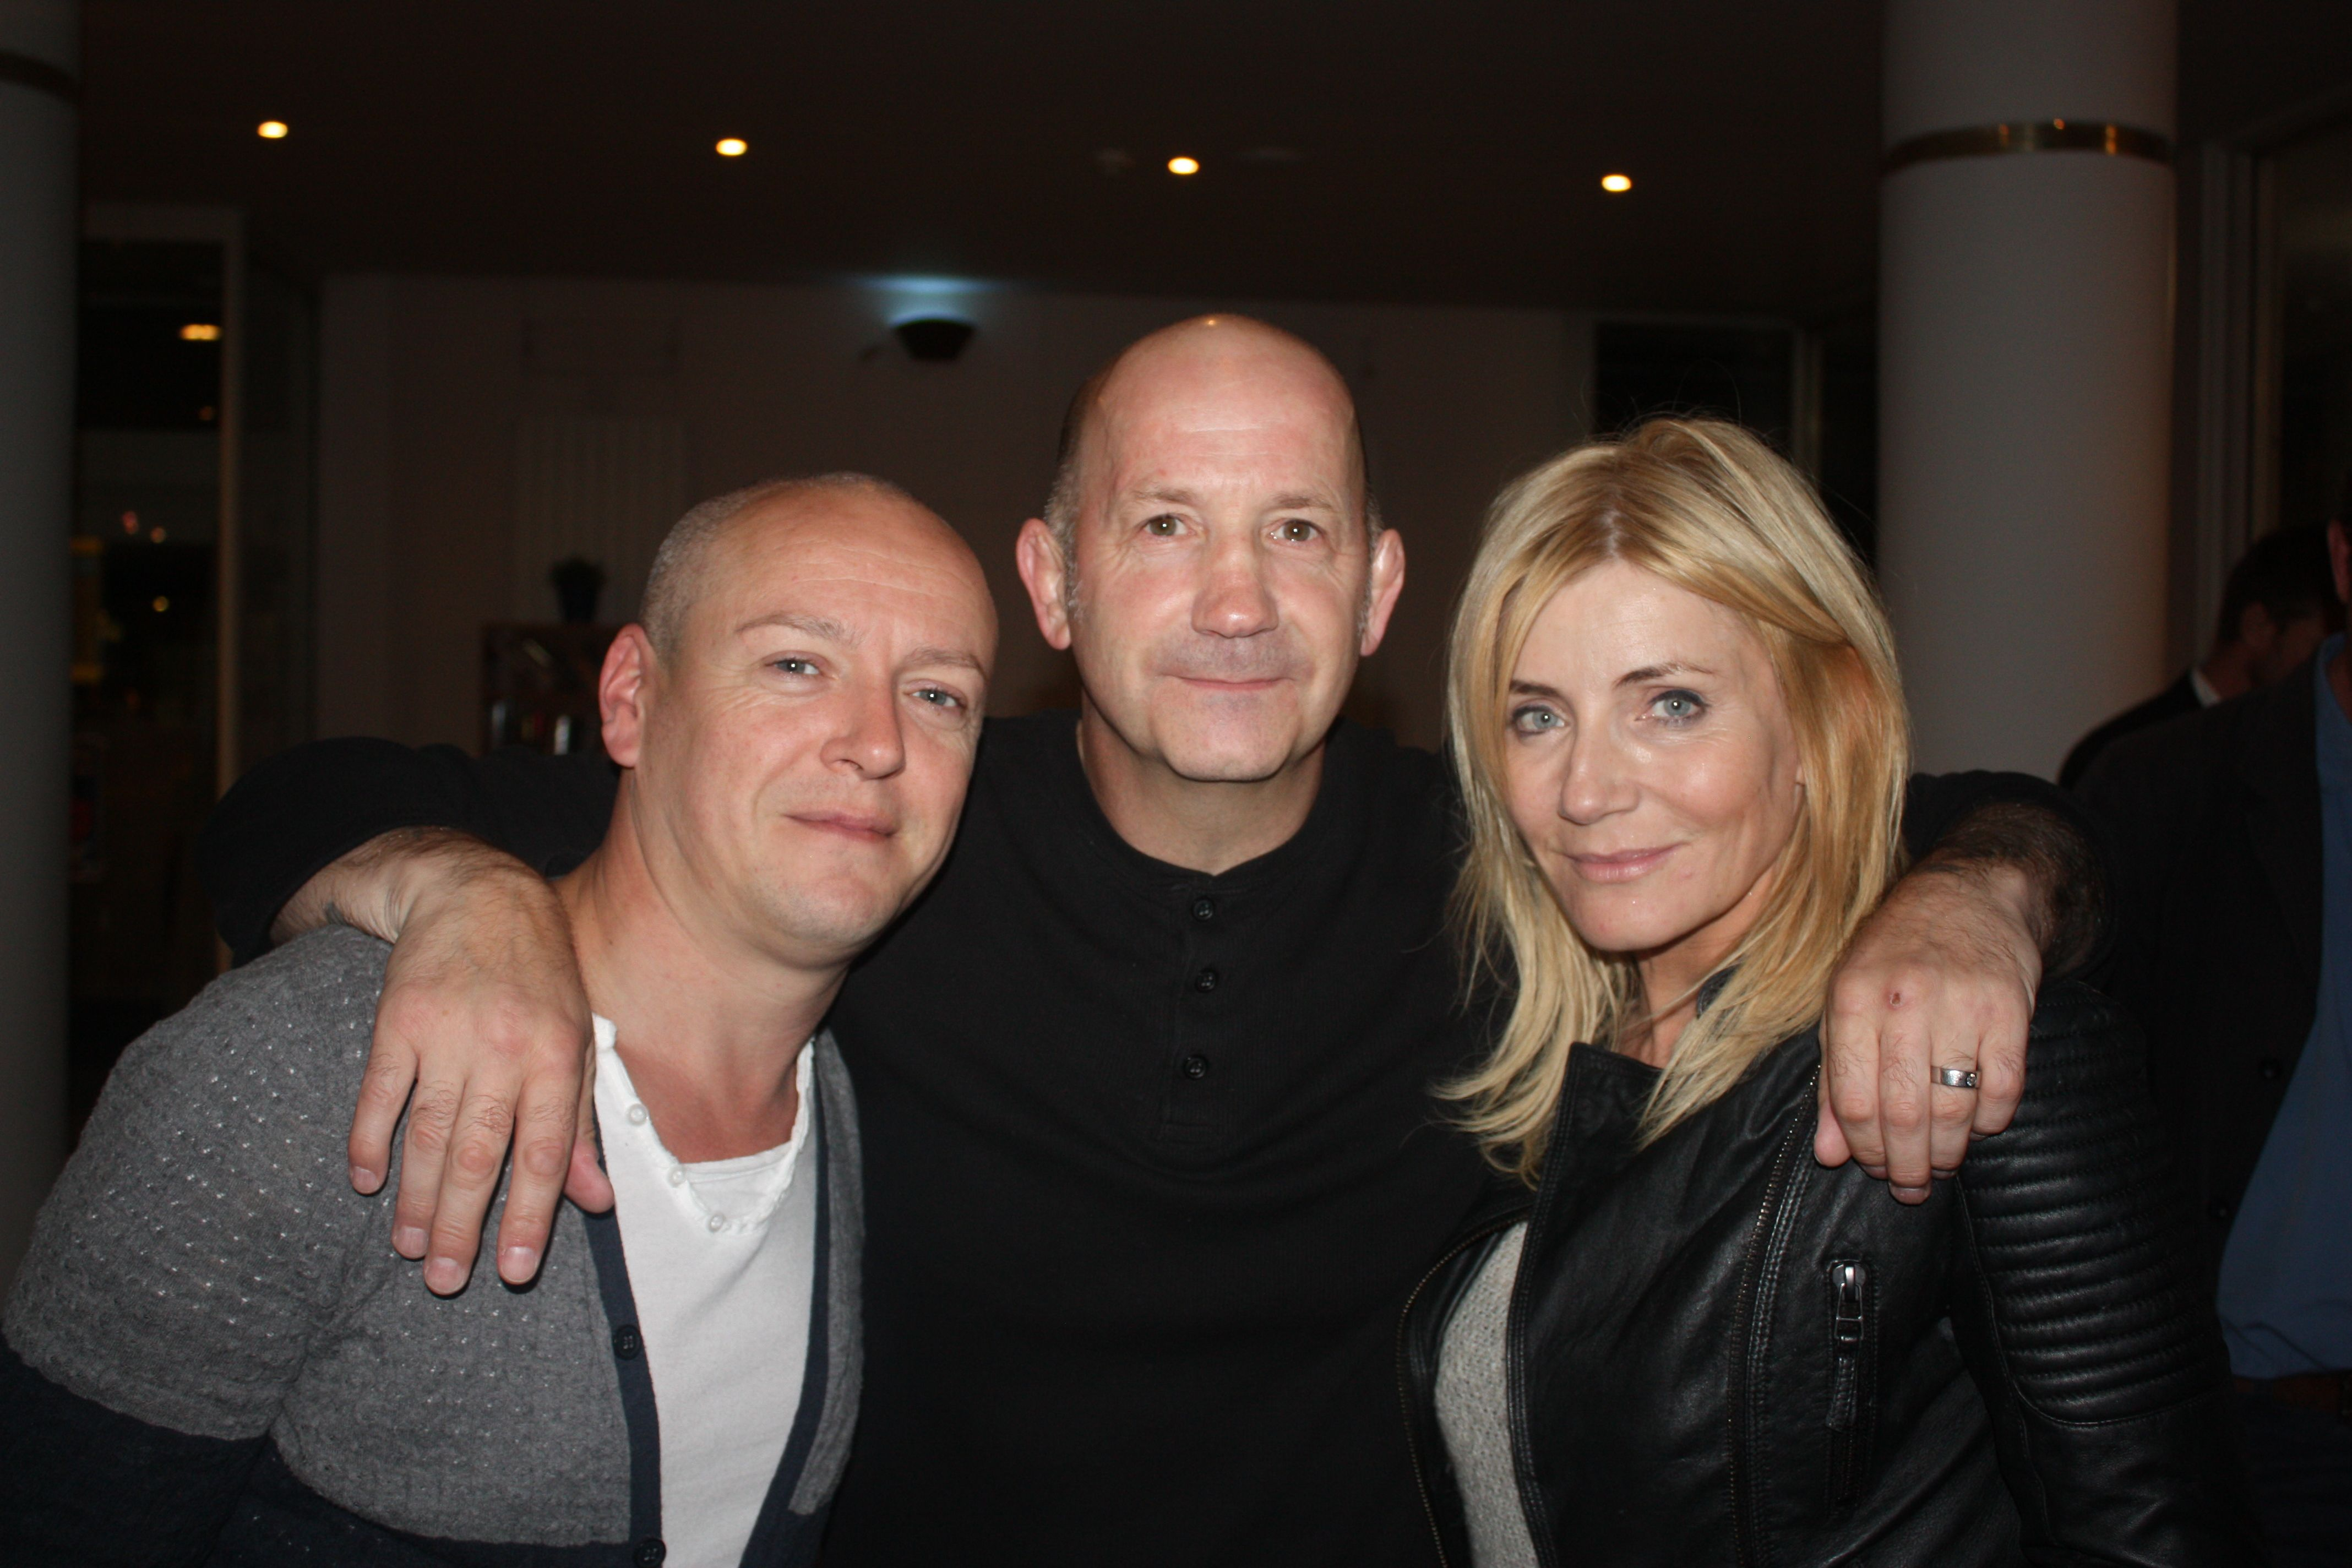 Craig conway geoff thompson and michelle collins at